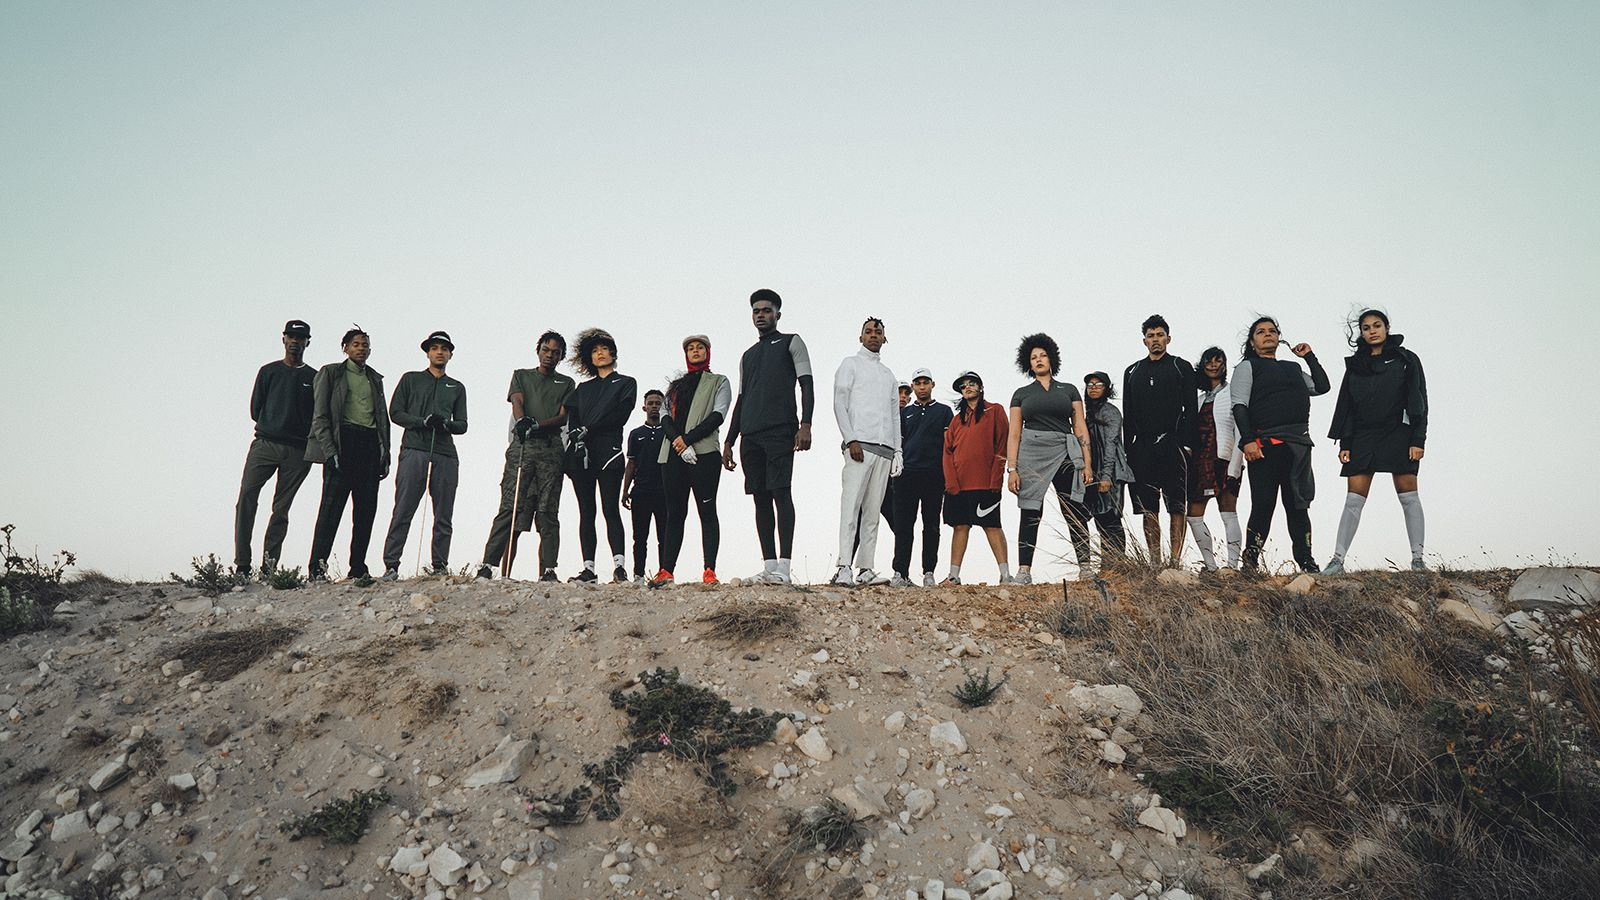 Nike Golf and Highsnobiety met the Cape Town crew who are reclaiming their city through golf, as well as pushing the boundaries of the sport in the process.